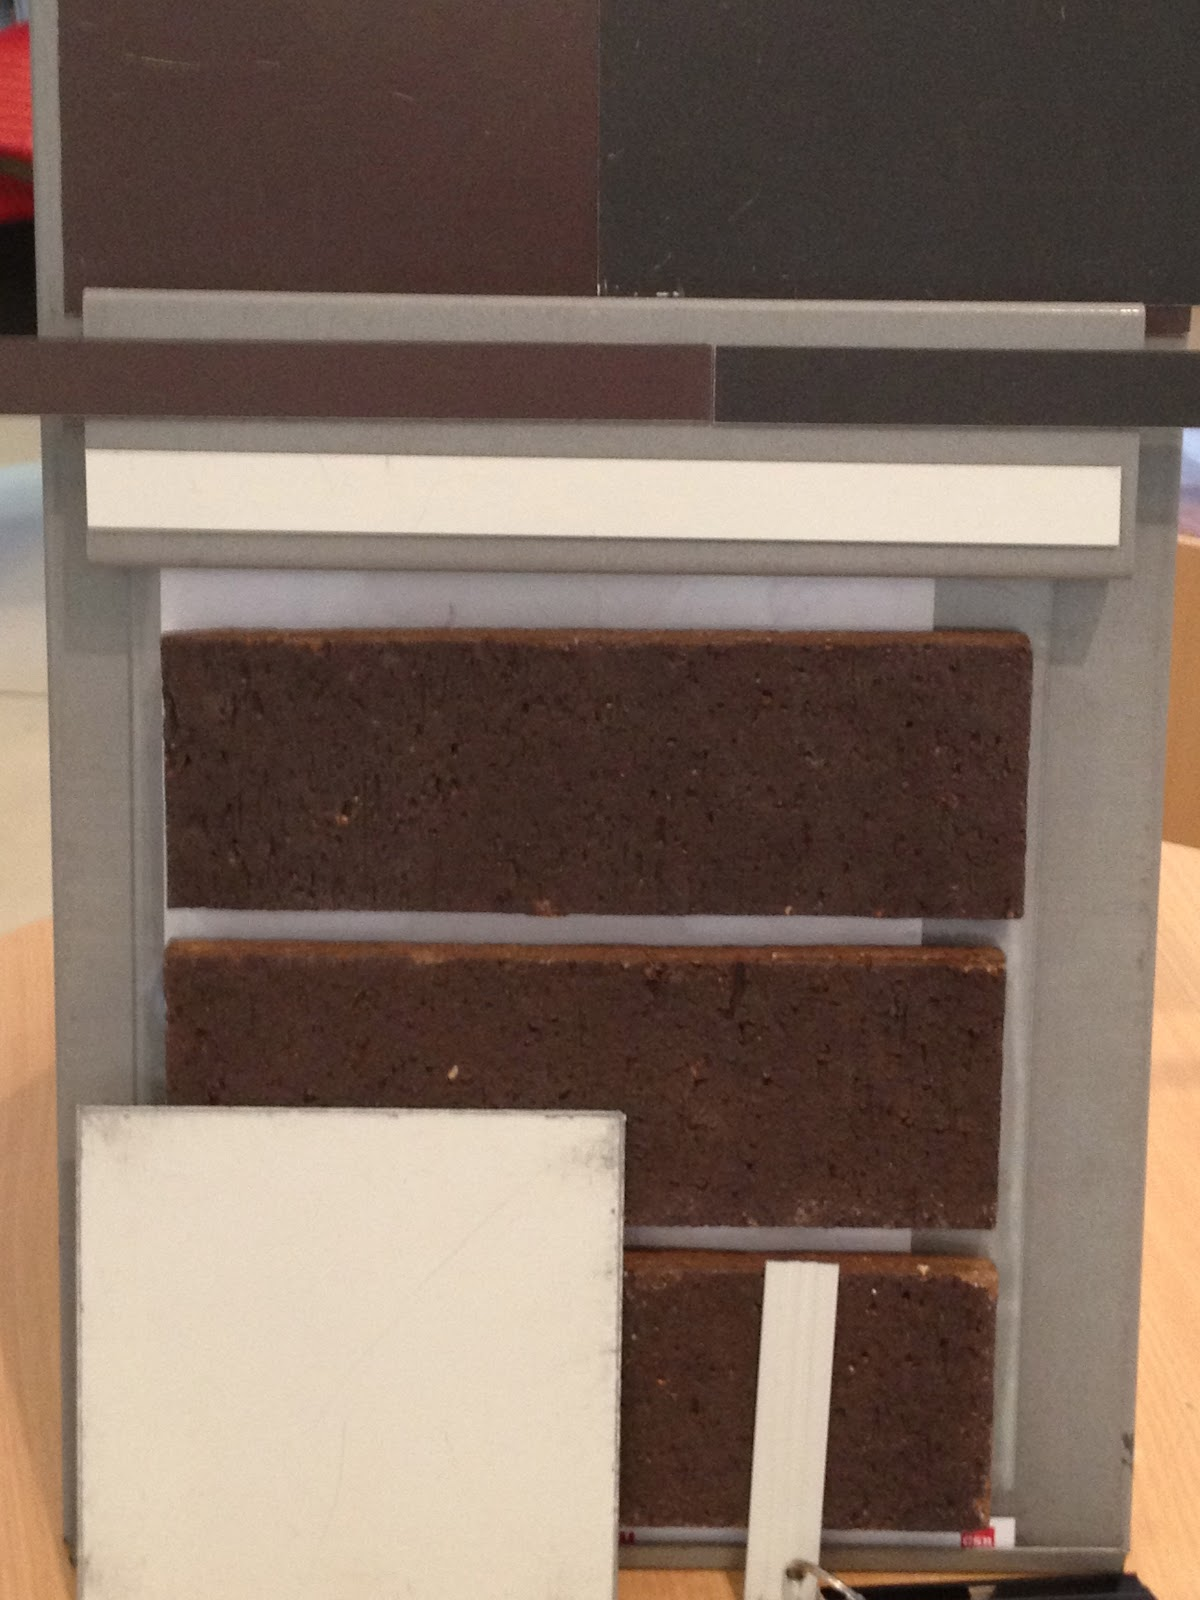 Eden brae newport 42 brick selection for Brick selection for houses